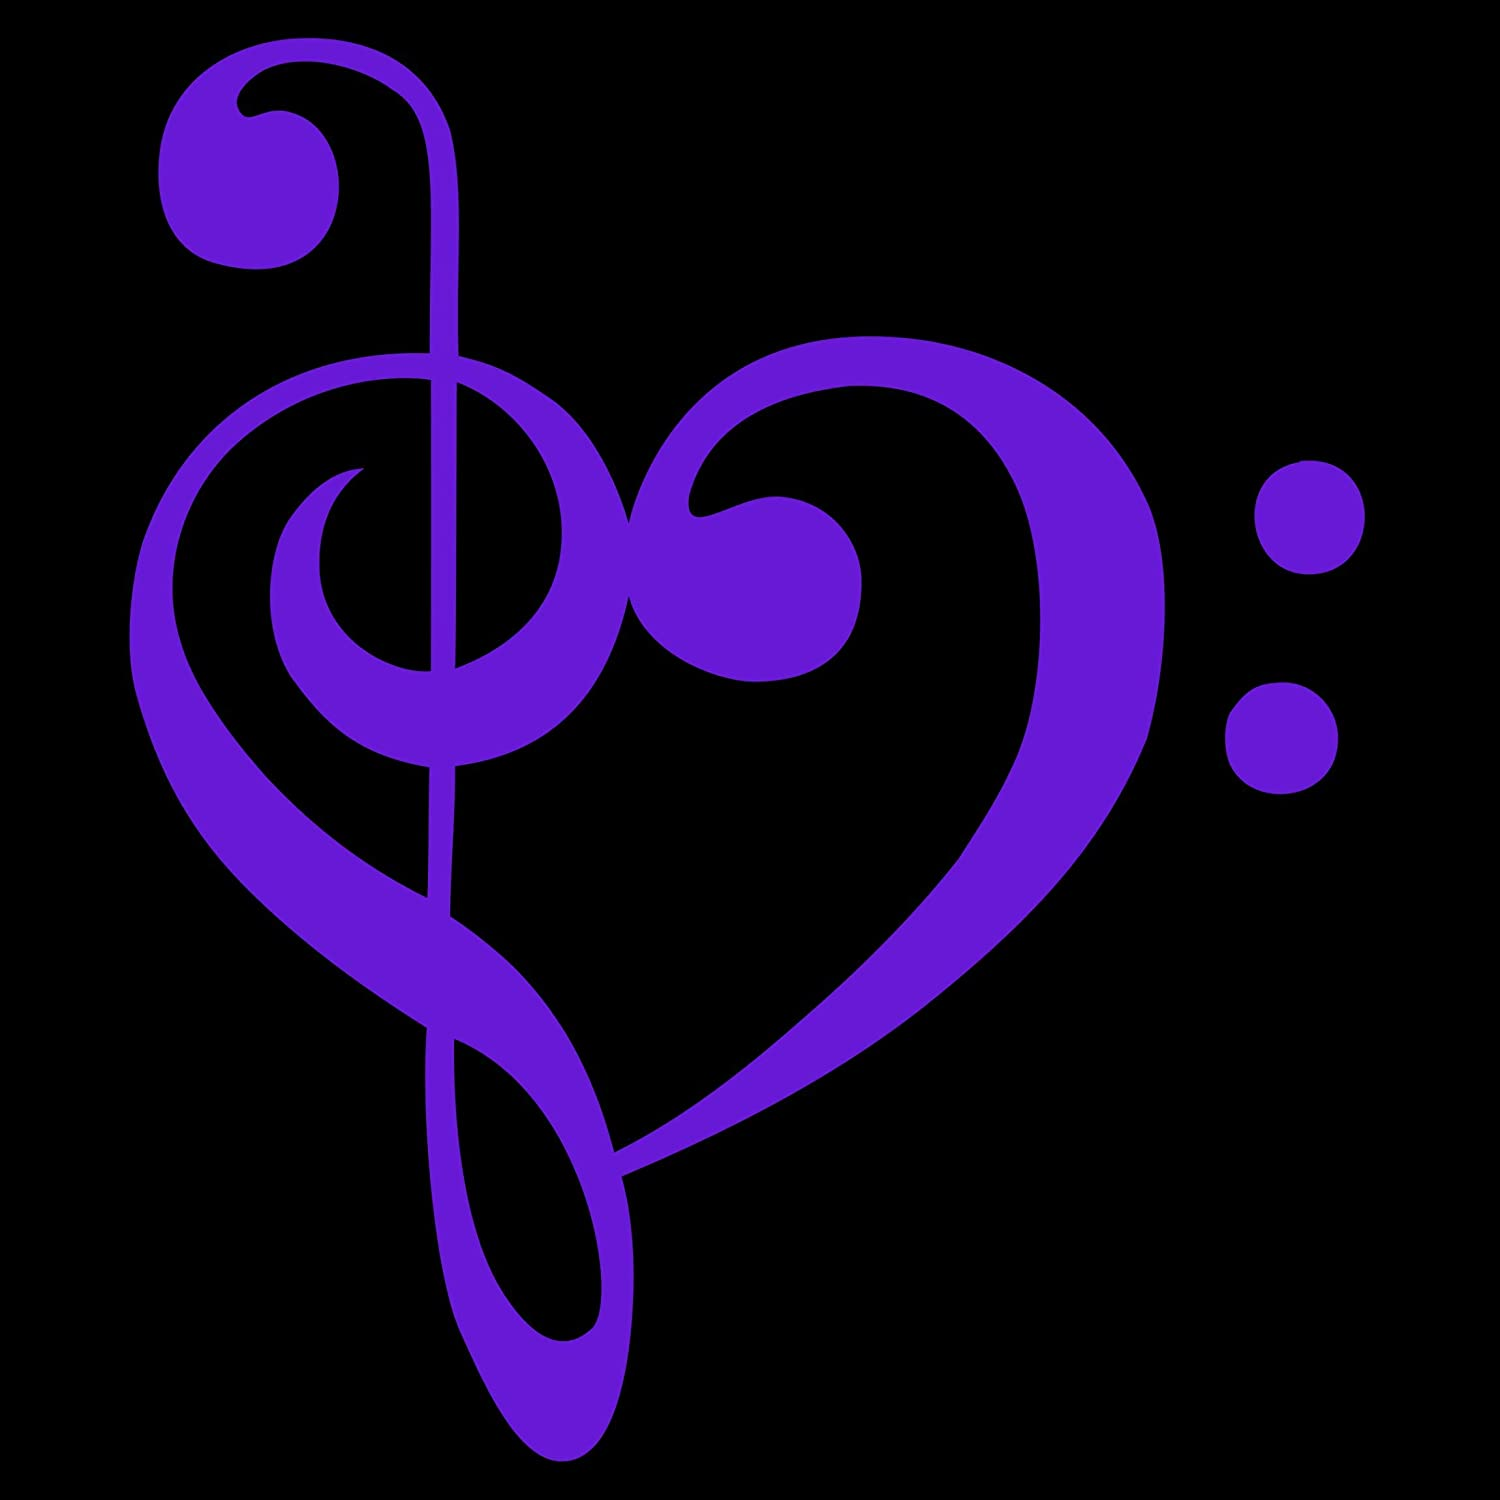 TREBLE BASS CLEF HEART Vinyl Decal Sticker for Laptop Ipad Window Wall Car Truck Motorcycle Lavender, 3.5